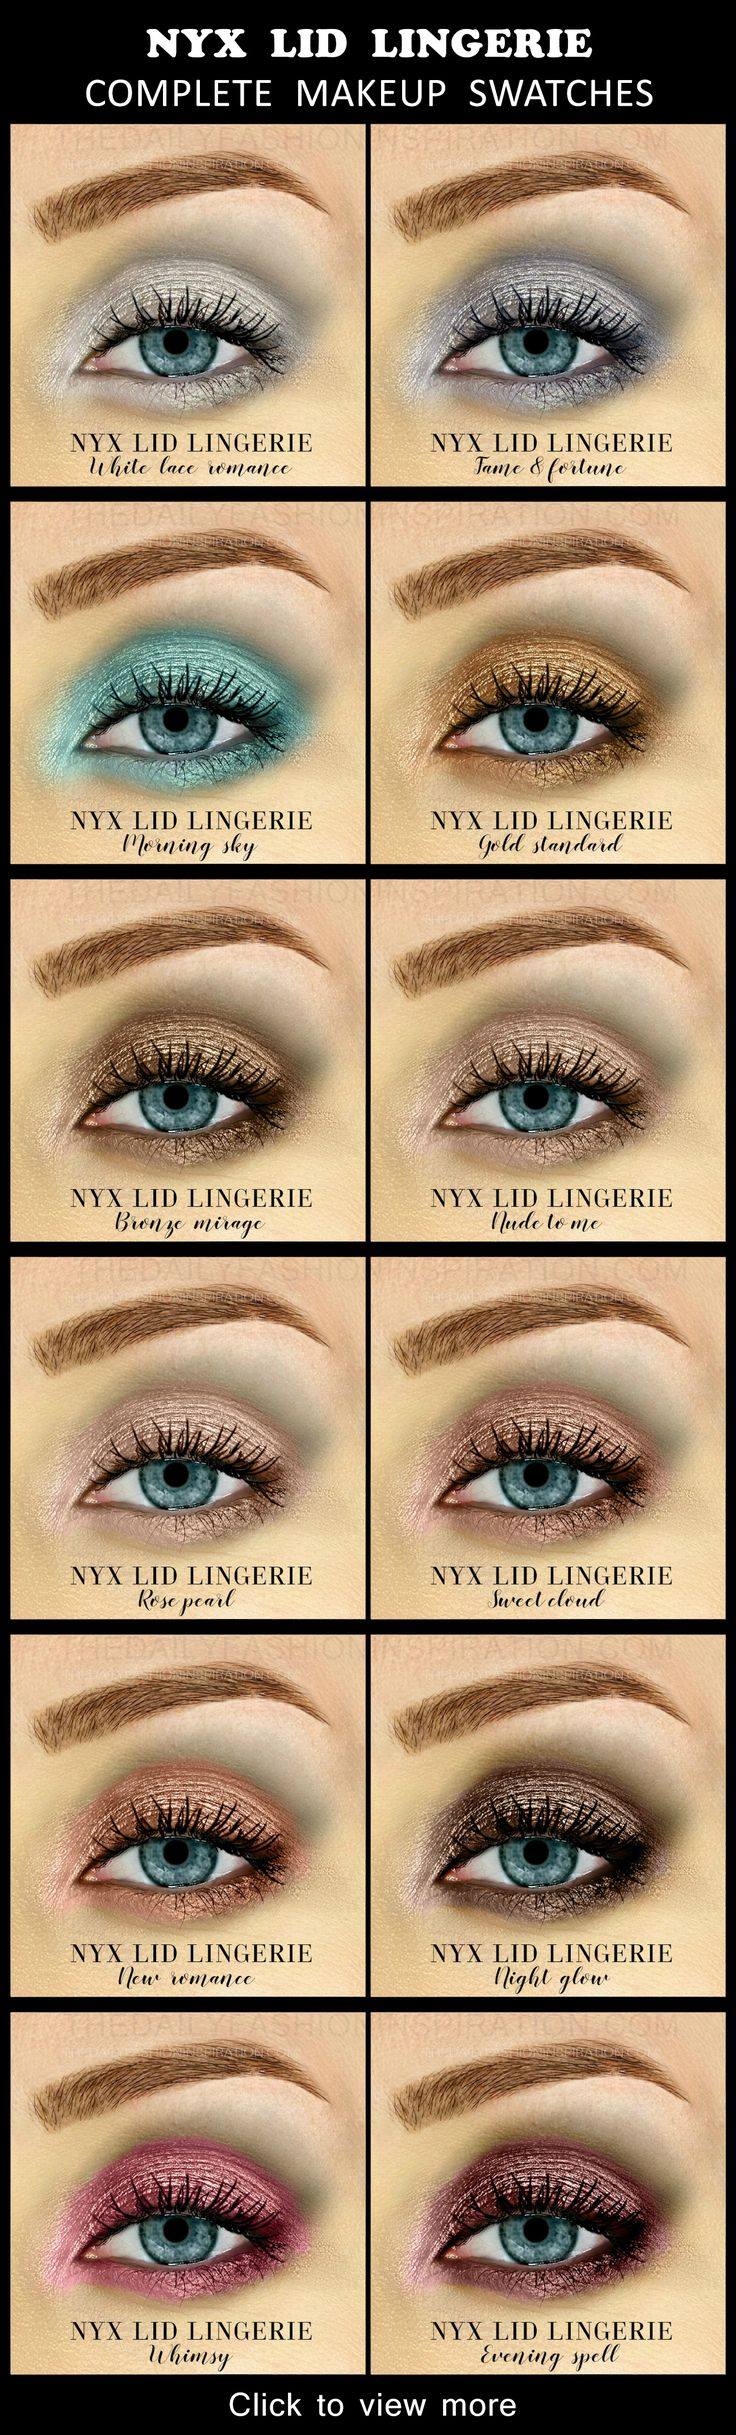 View all 12 swatches for the NYX lid lingerie collection. Shop them in the blog ...